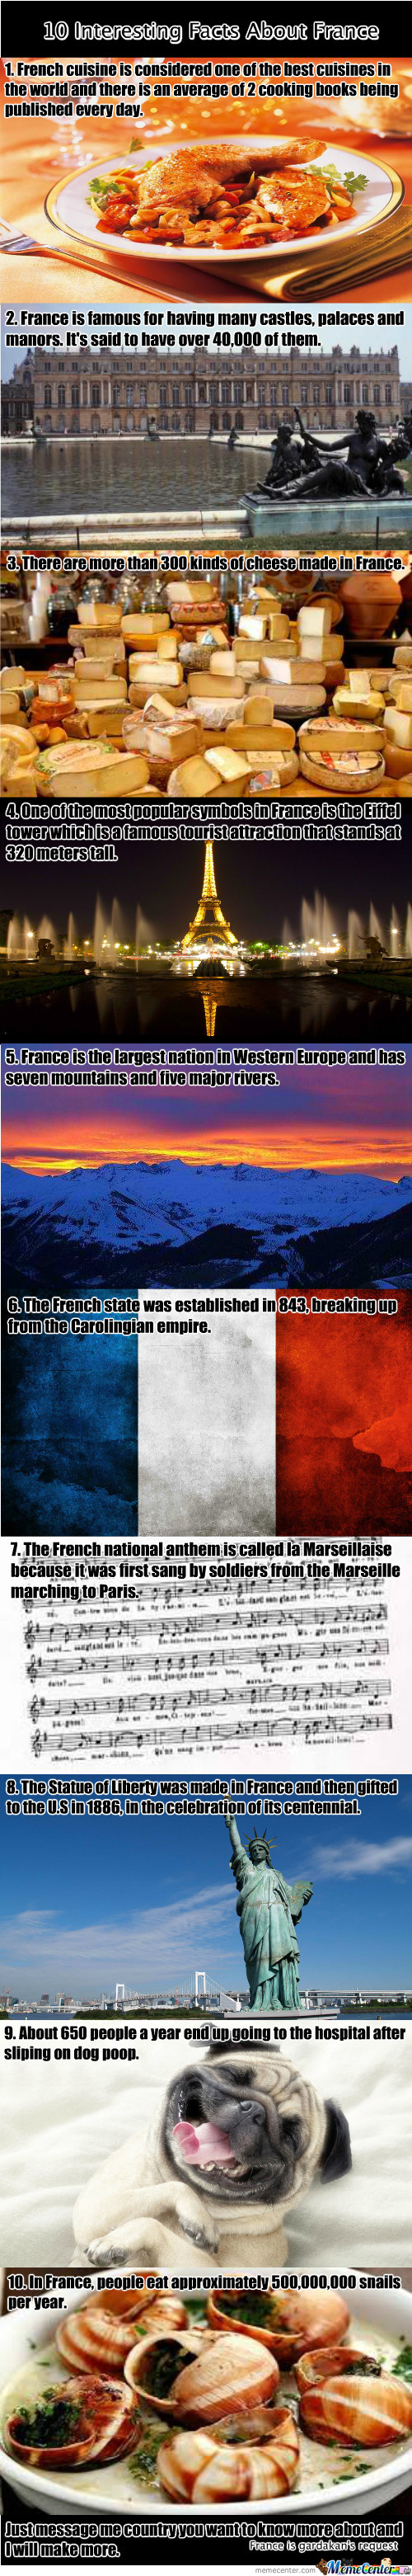 10 Interesting Facts About France